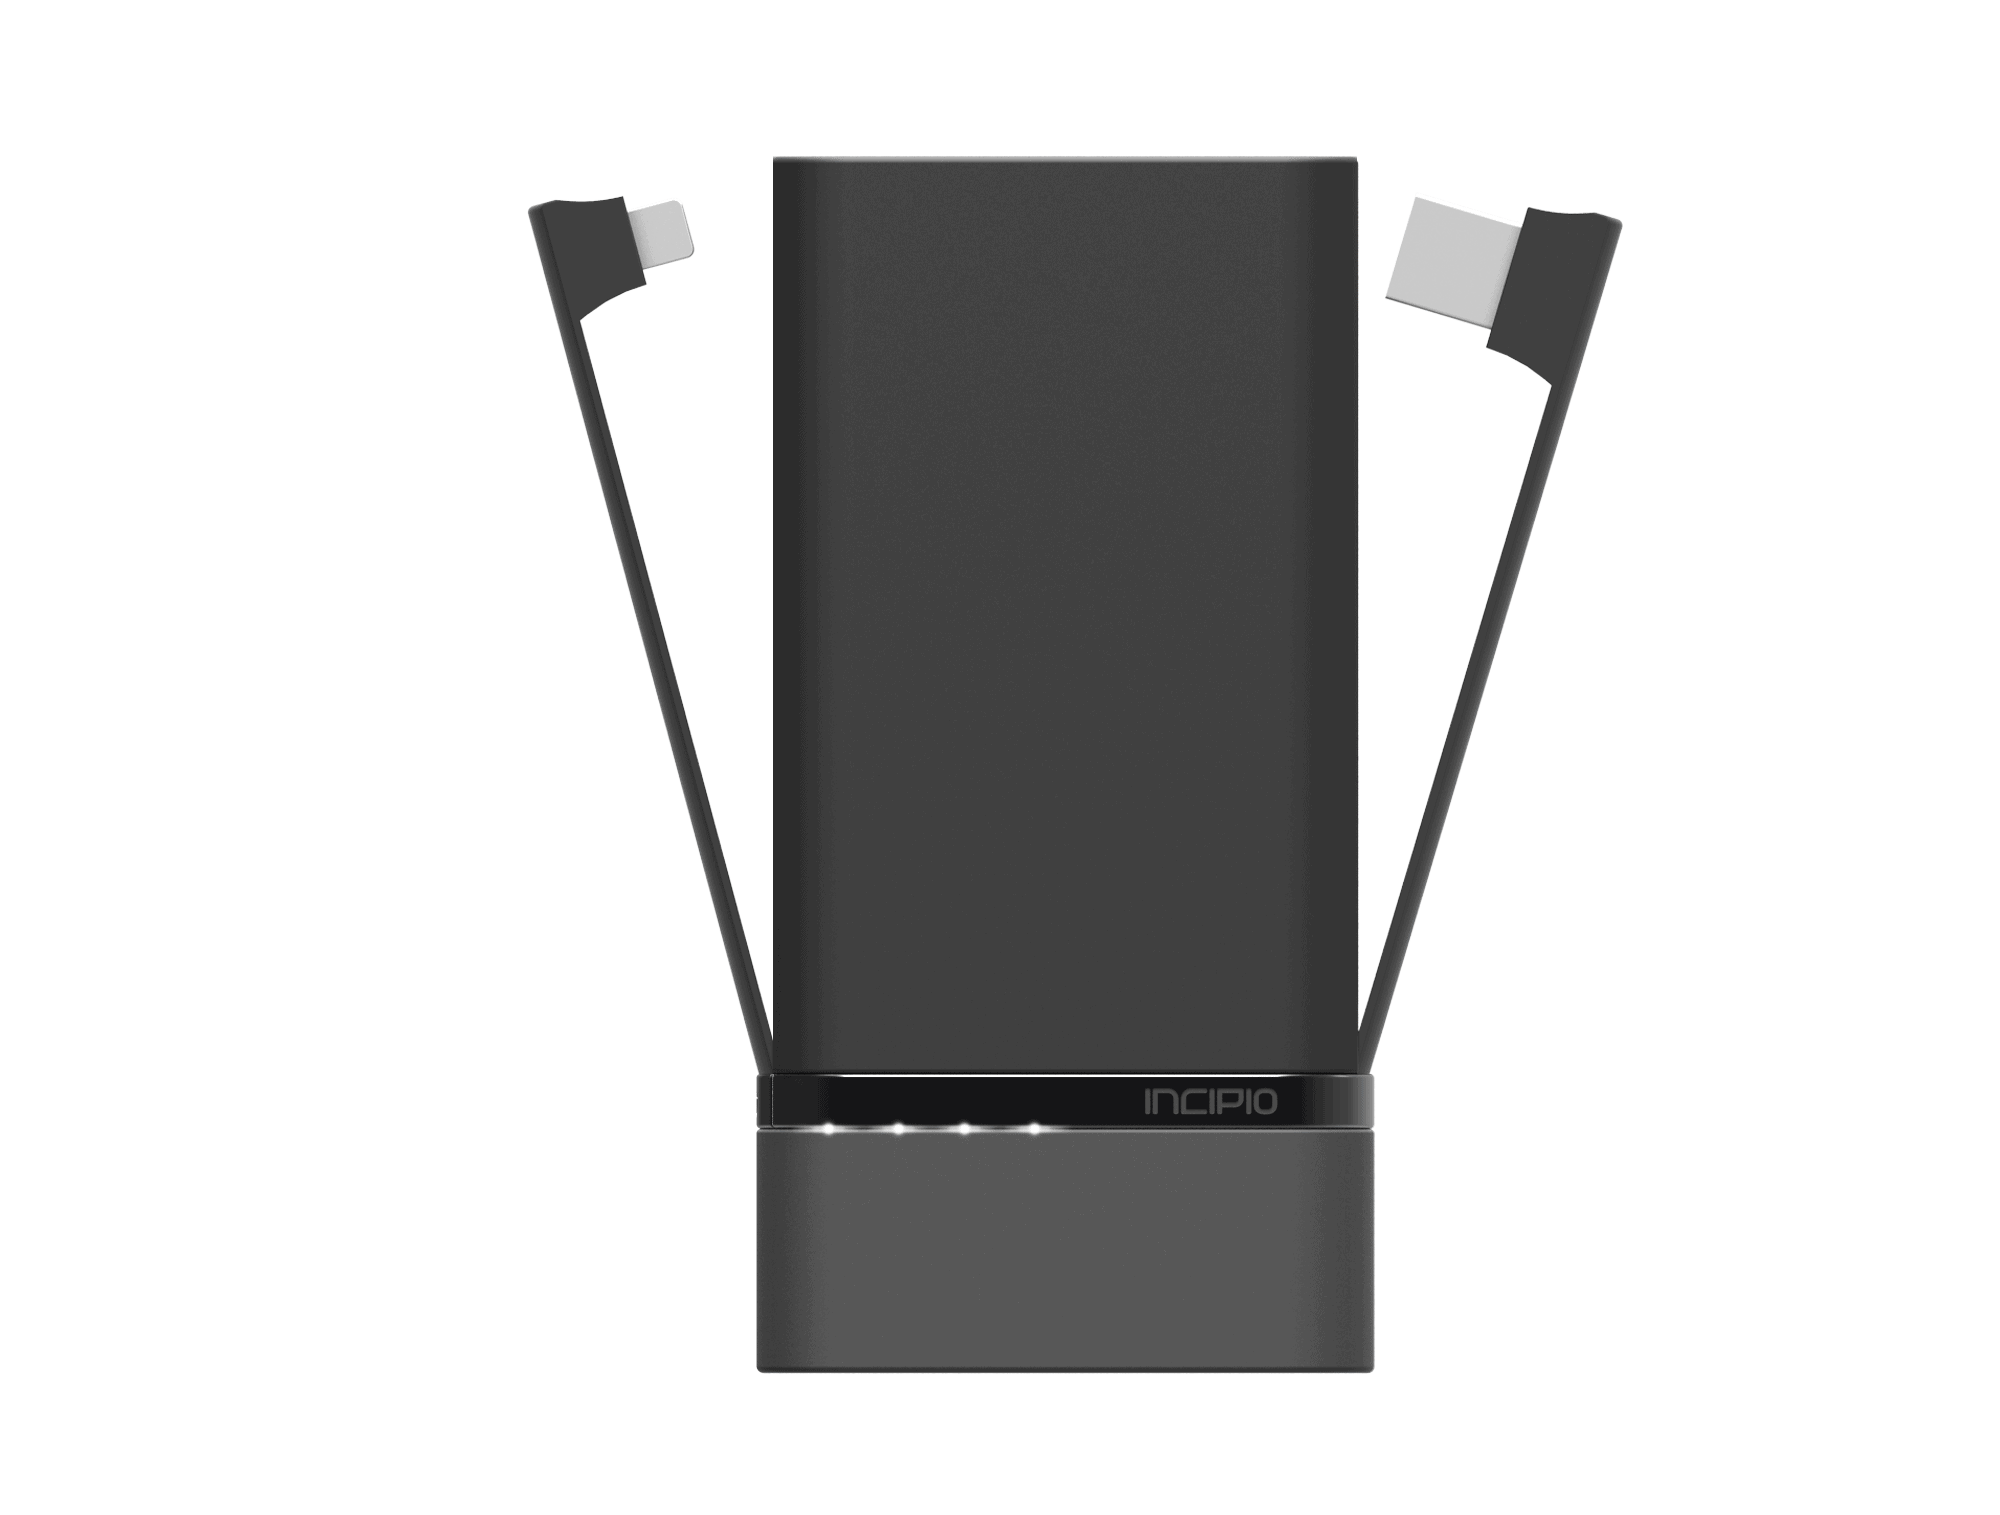 Incipio_offgrid USB C Quick Charge 3.0 Backup Battery